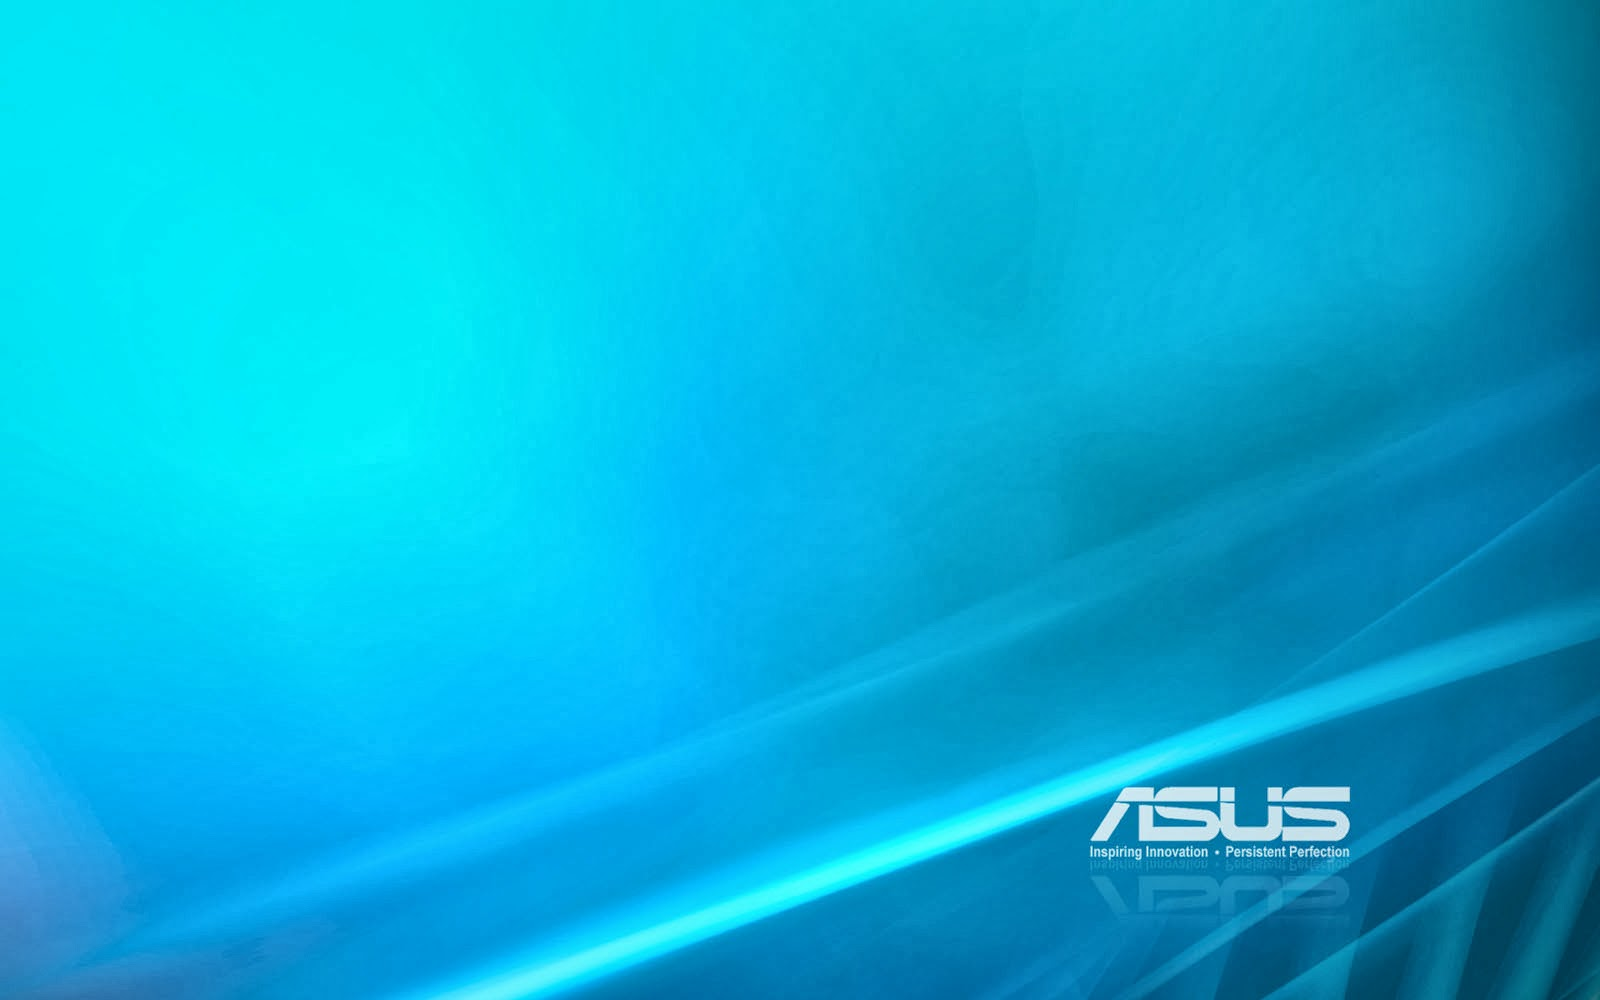 asus wallpapers asus wallpapers asus wallpapers asus wallpapers 1600x1000